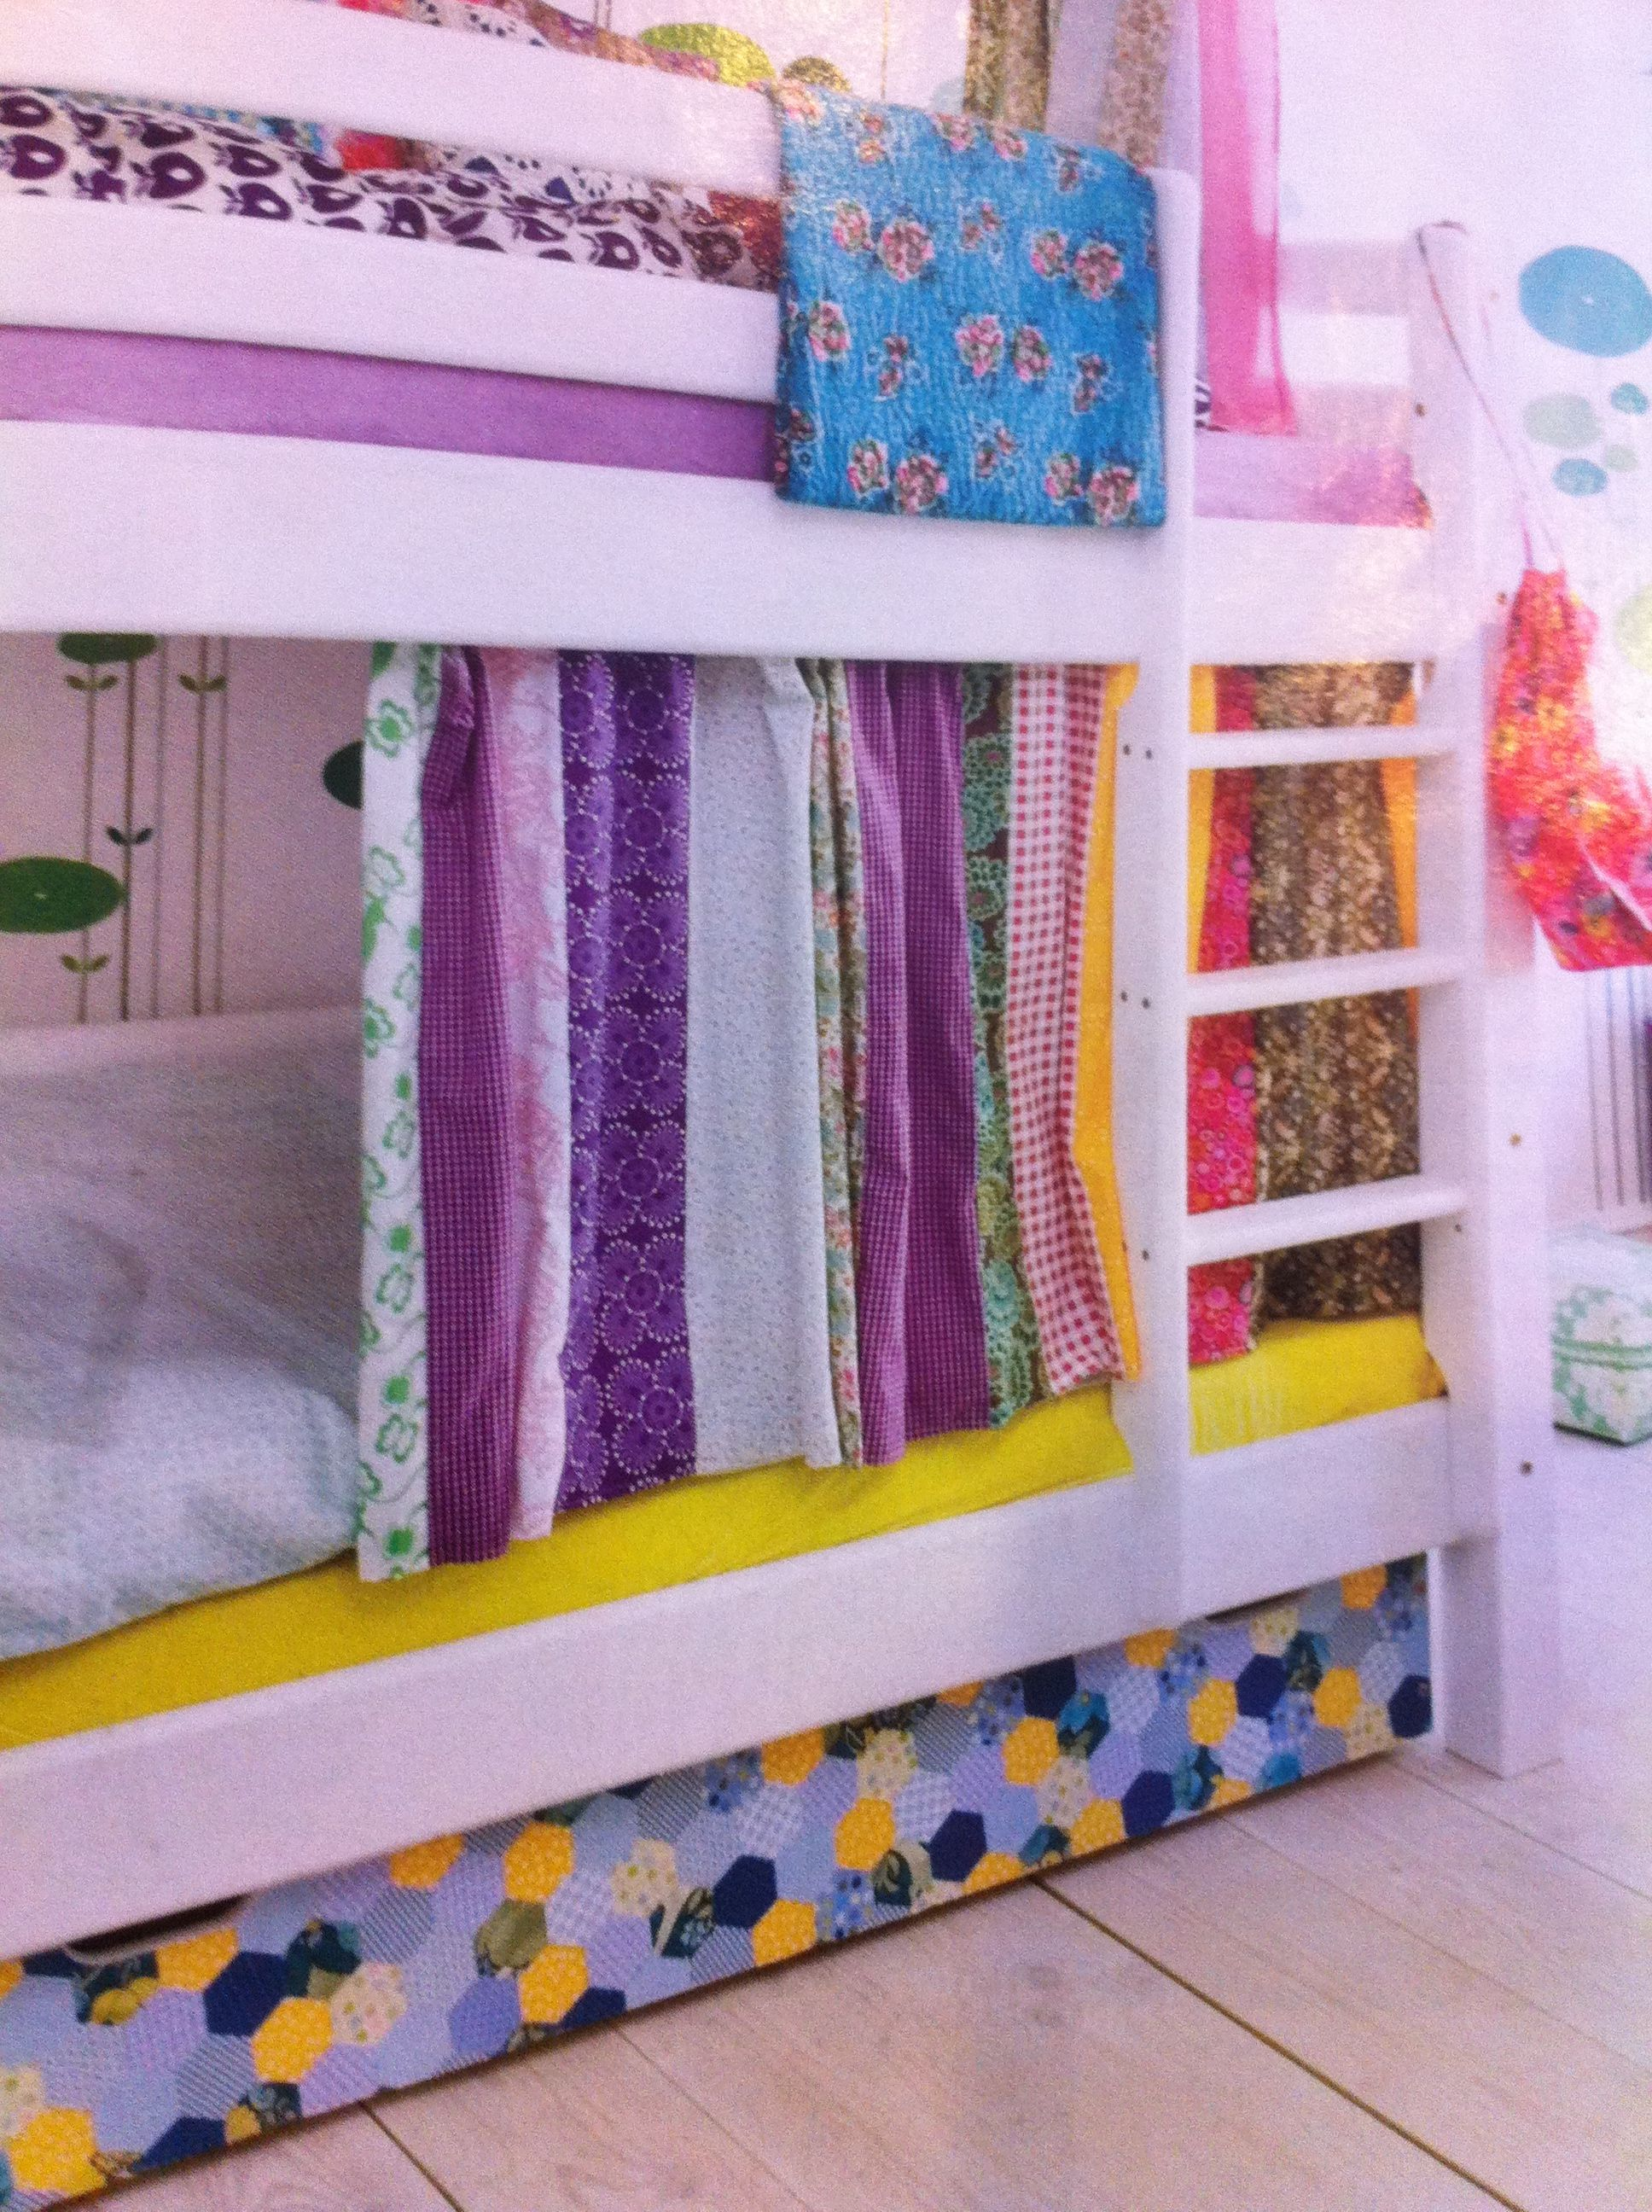 Loft bed curtains how to make - Bunk Bed Curtains